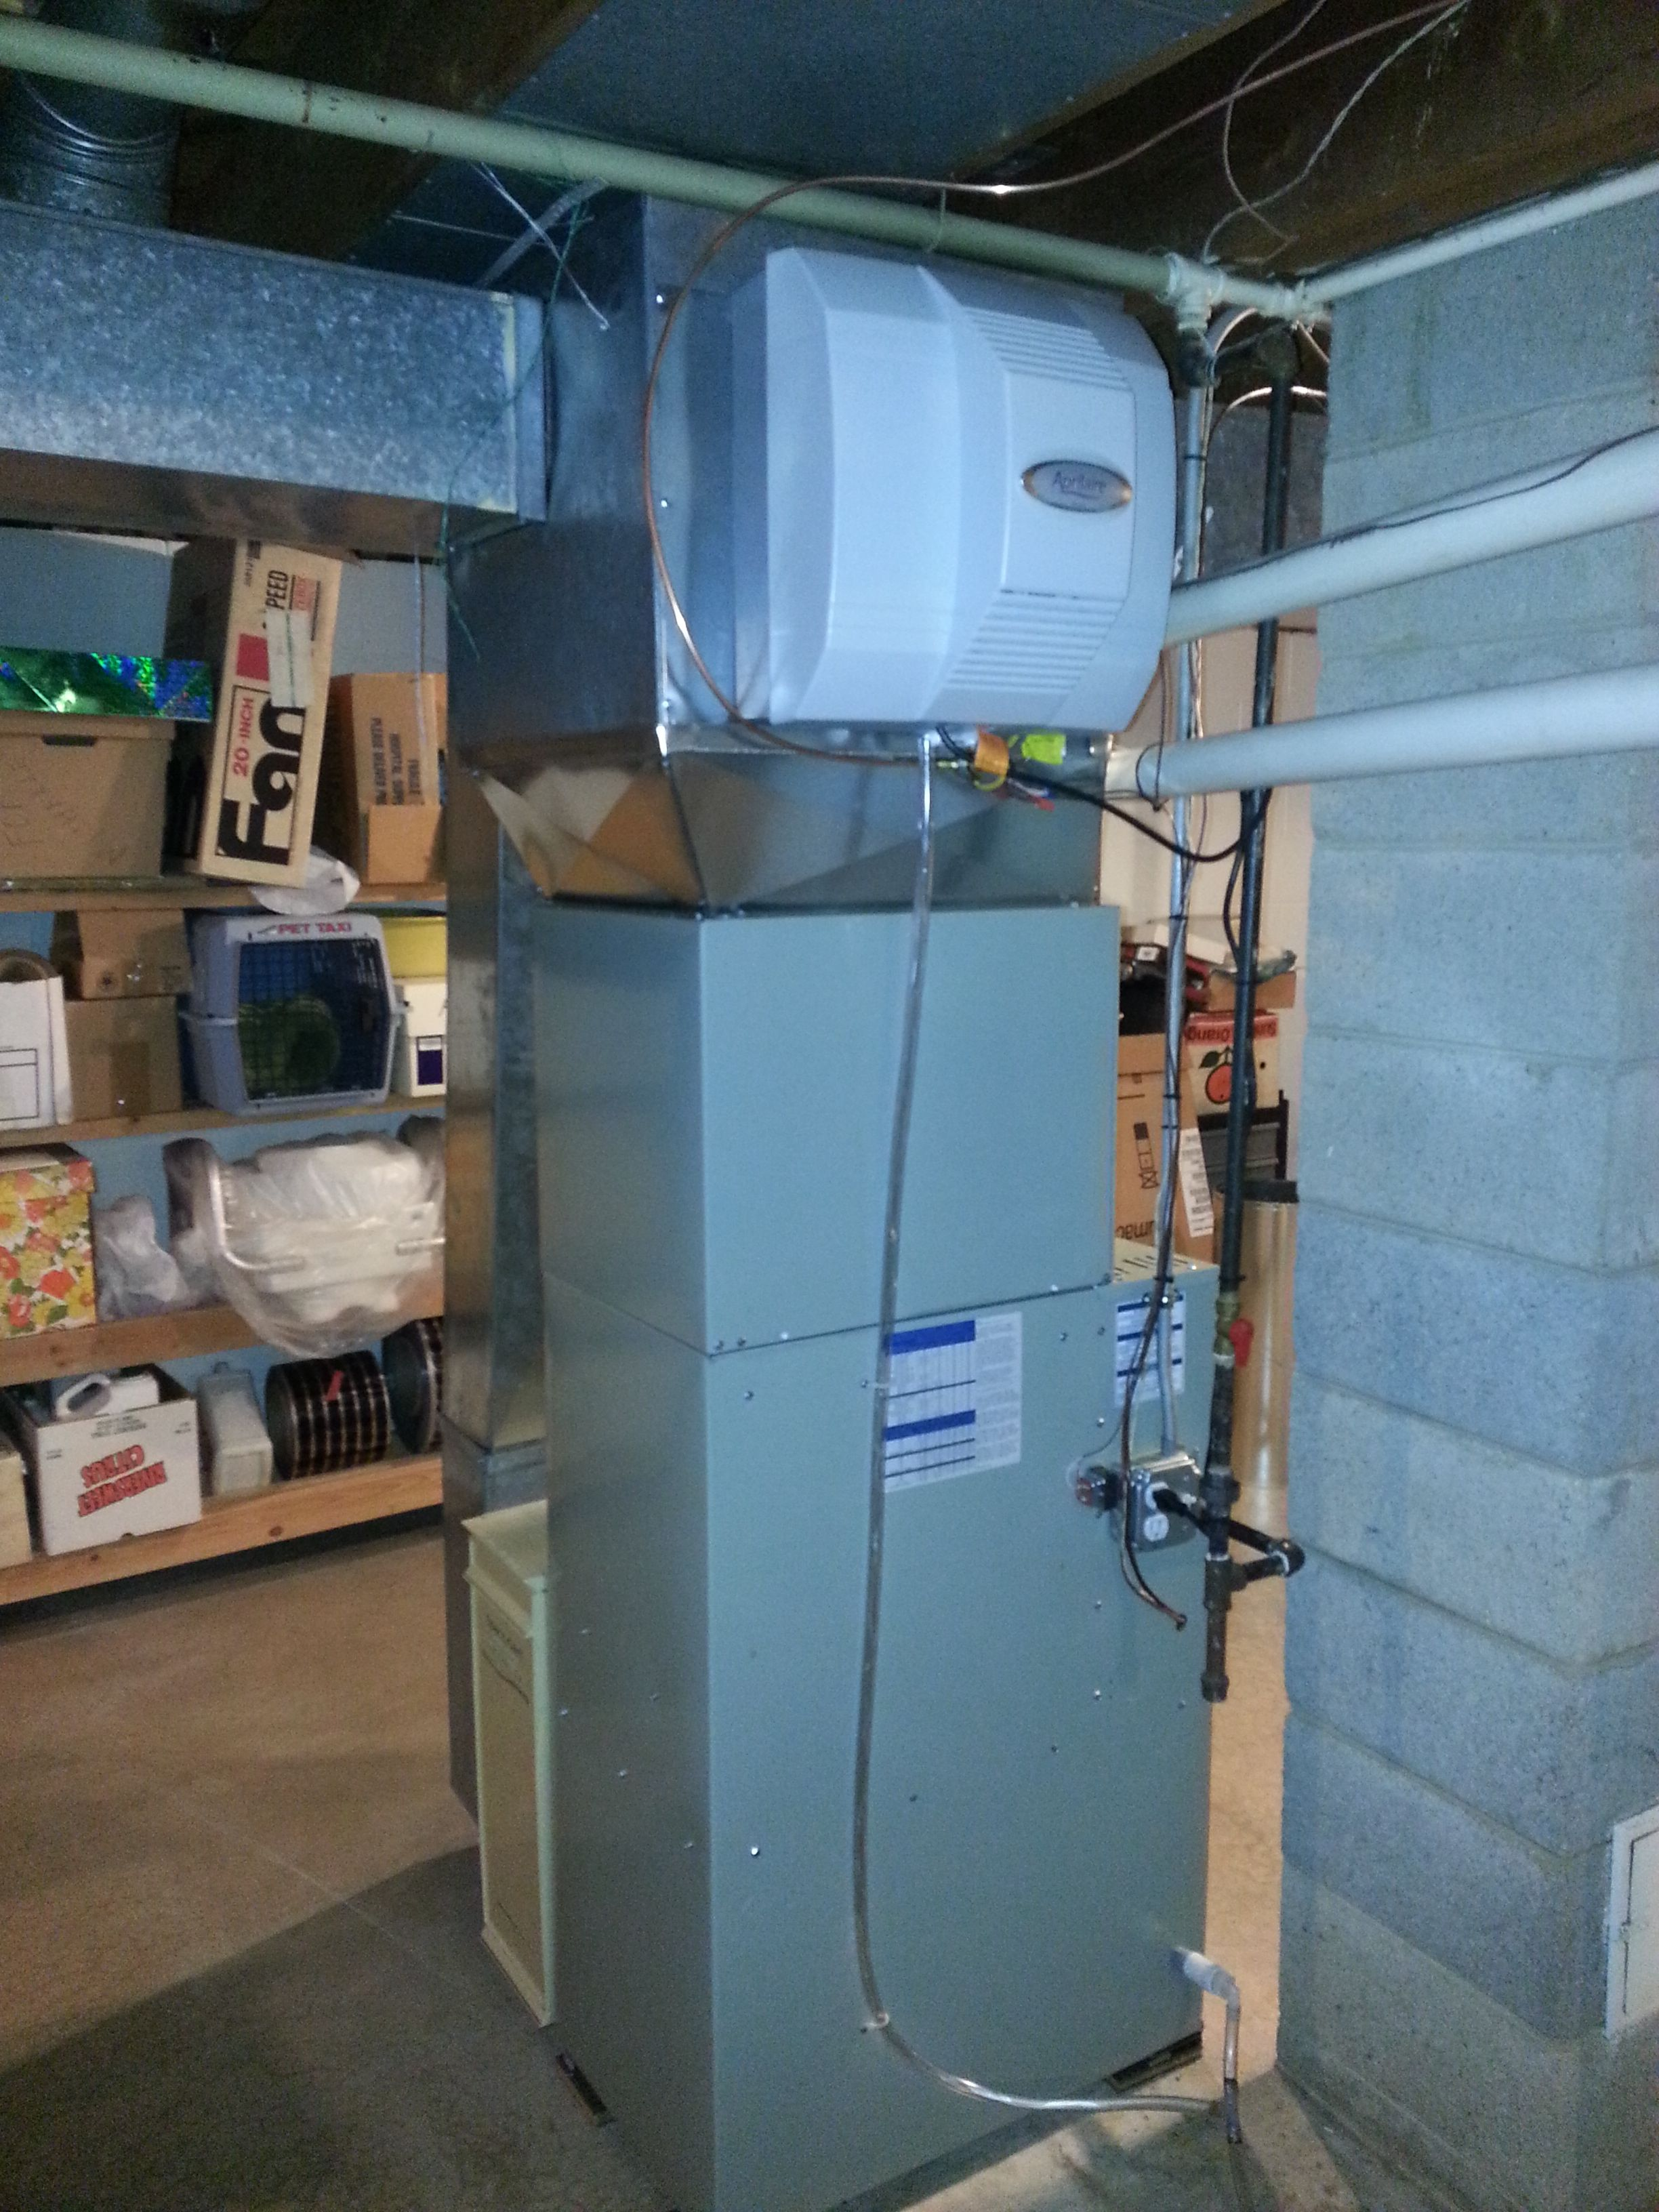 American Standard Two Stage Furnace, Cased Coil, and Whole